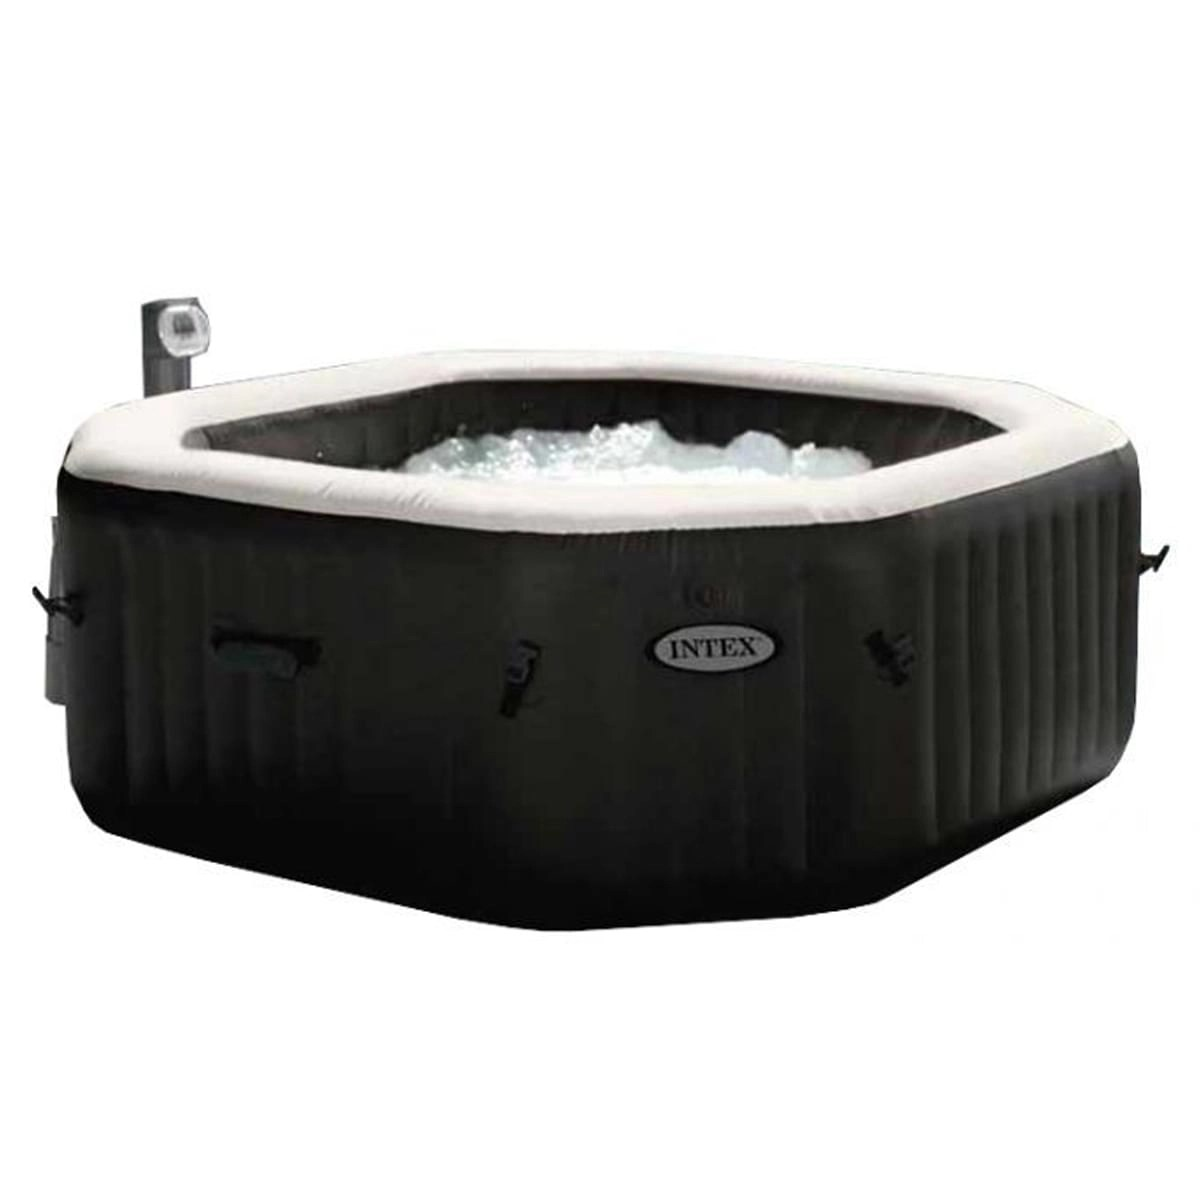 De Bubbel Zwembad Intex Pure Spa Jet Bubble Deluxe 6 Persoons